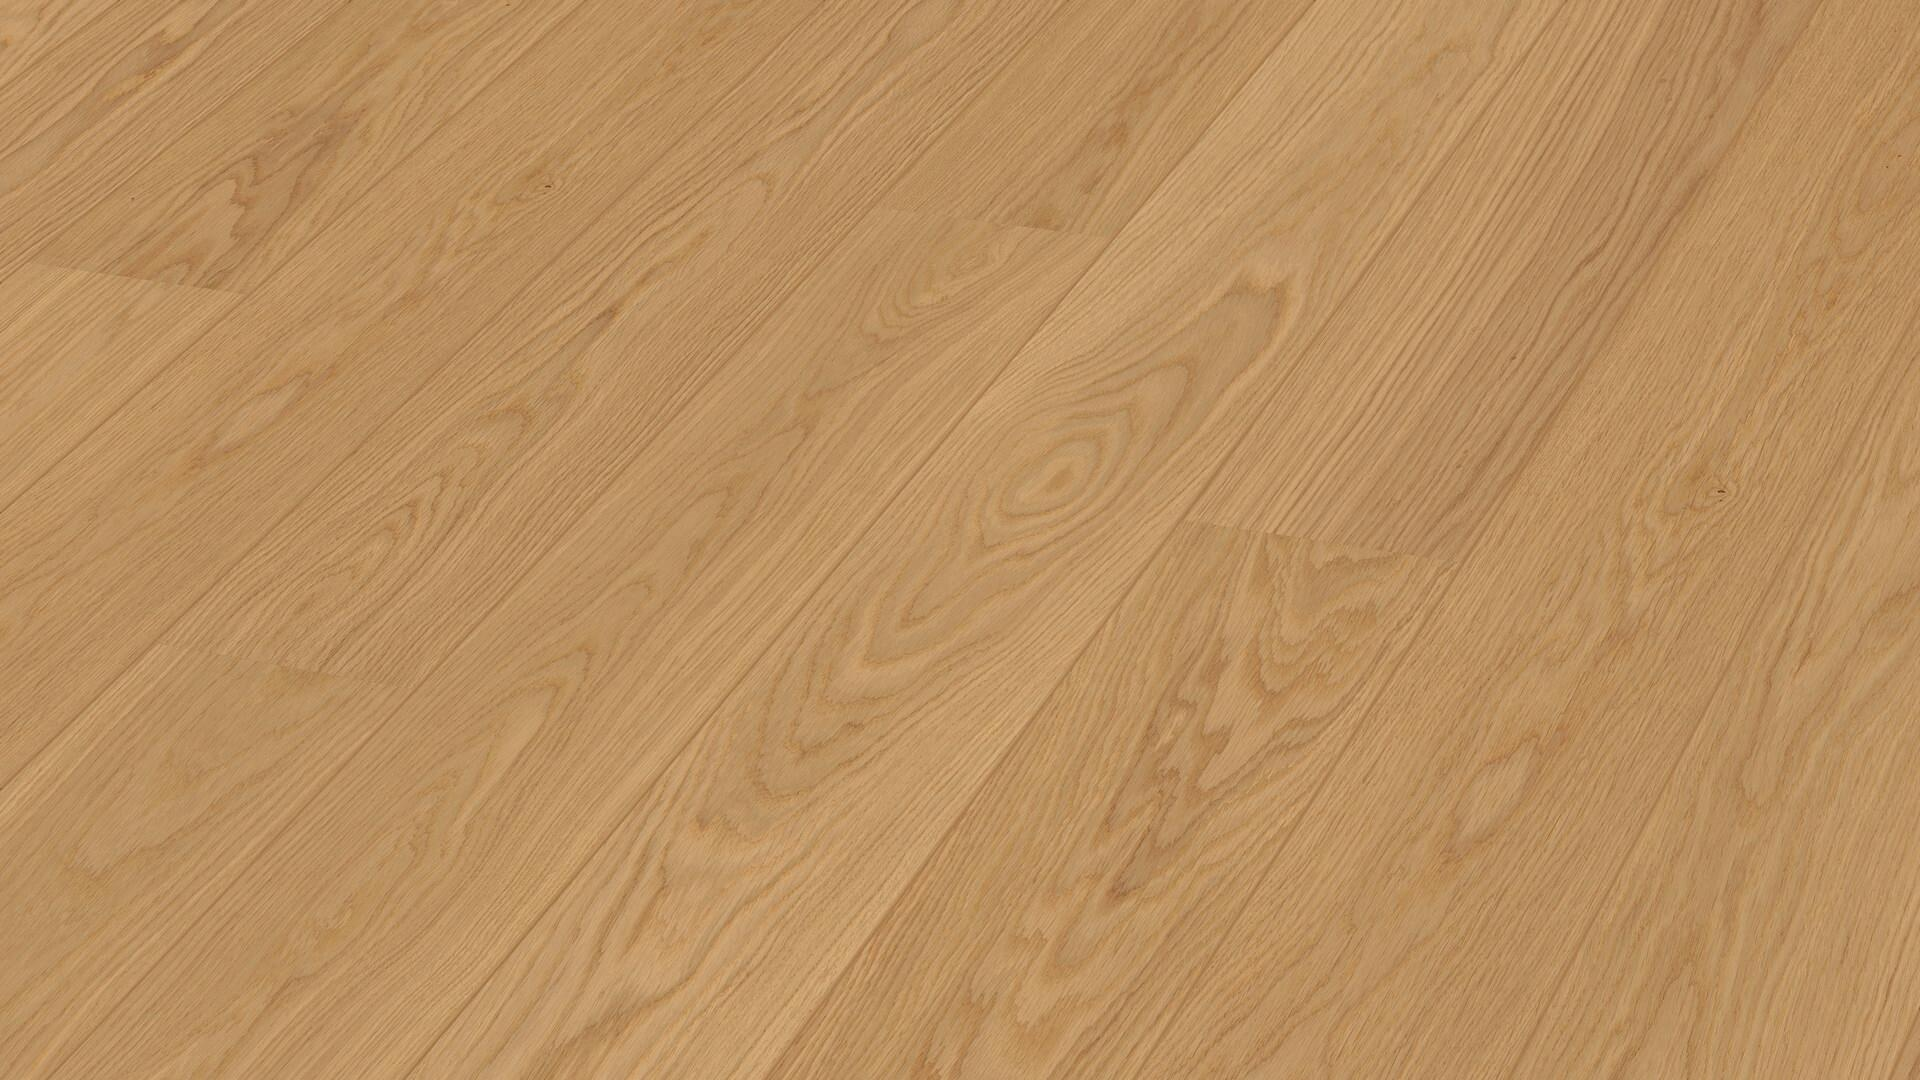 Parquet MeisterParquet. longlife PD 400 Roble armónico 8807